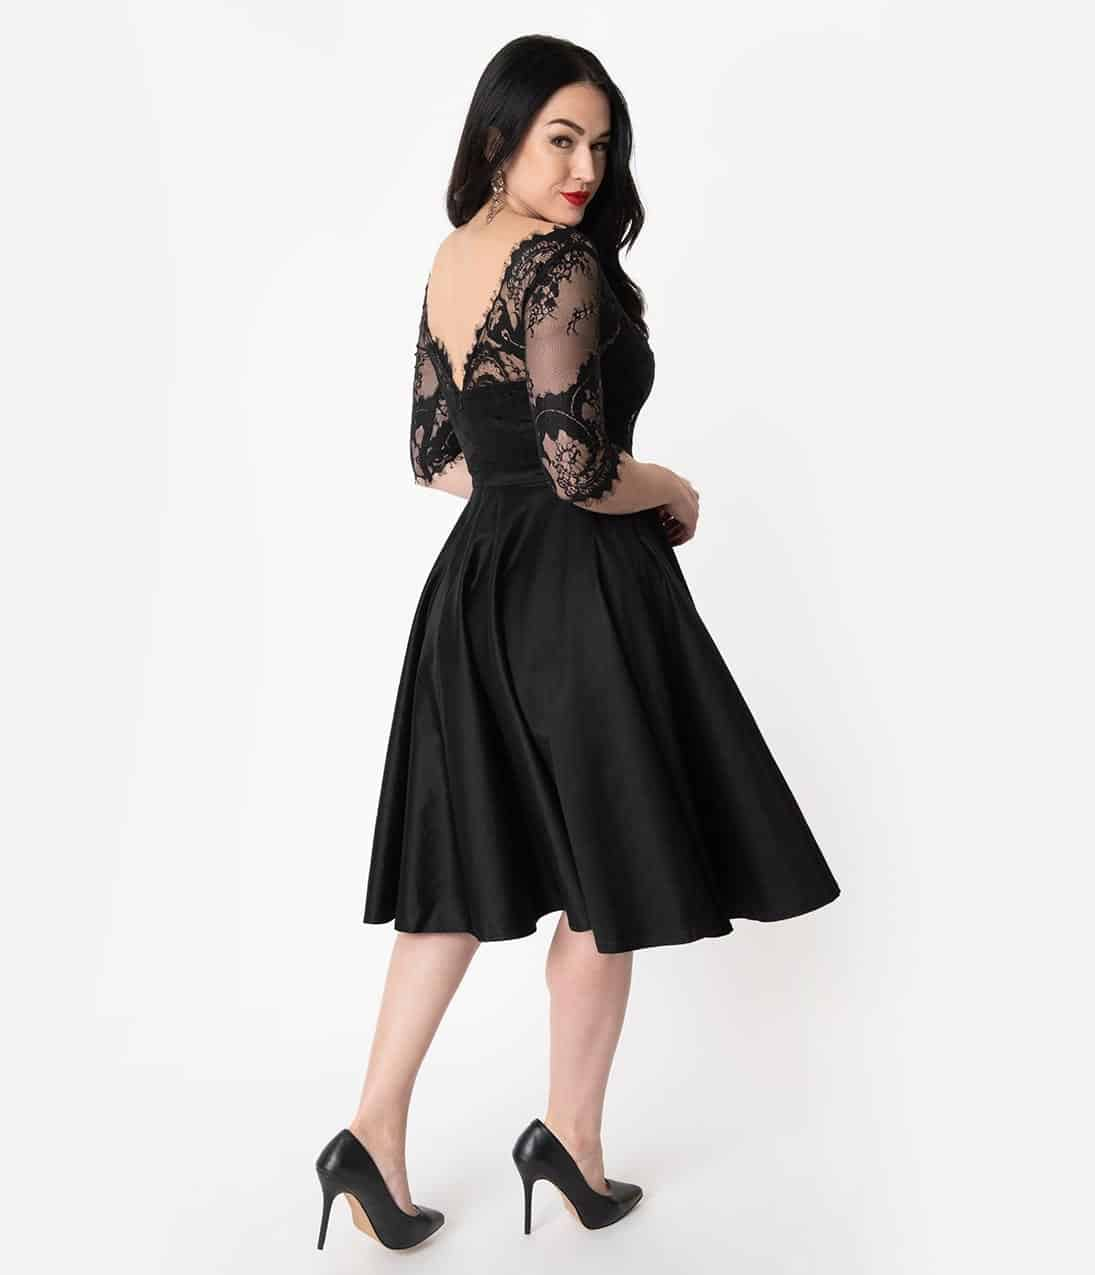 Vintage Diva 1950S Style Black Lace Sleeved Leonora Swing Dress